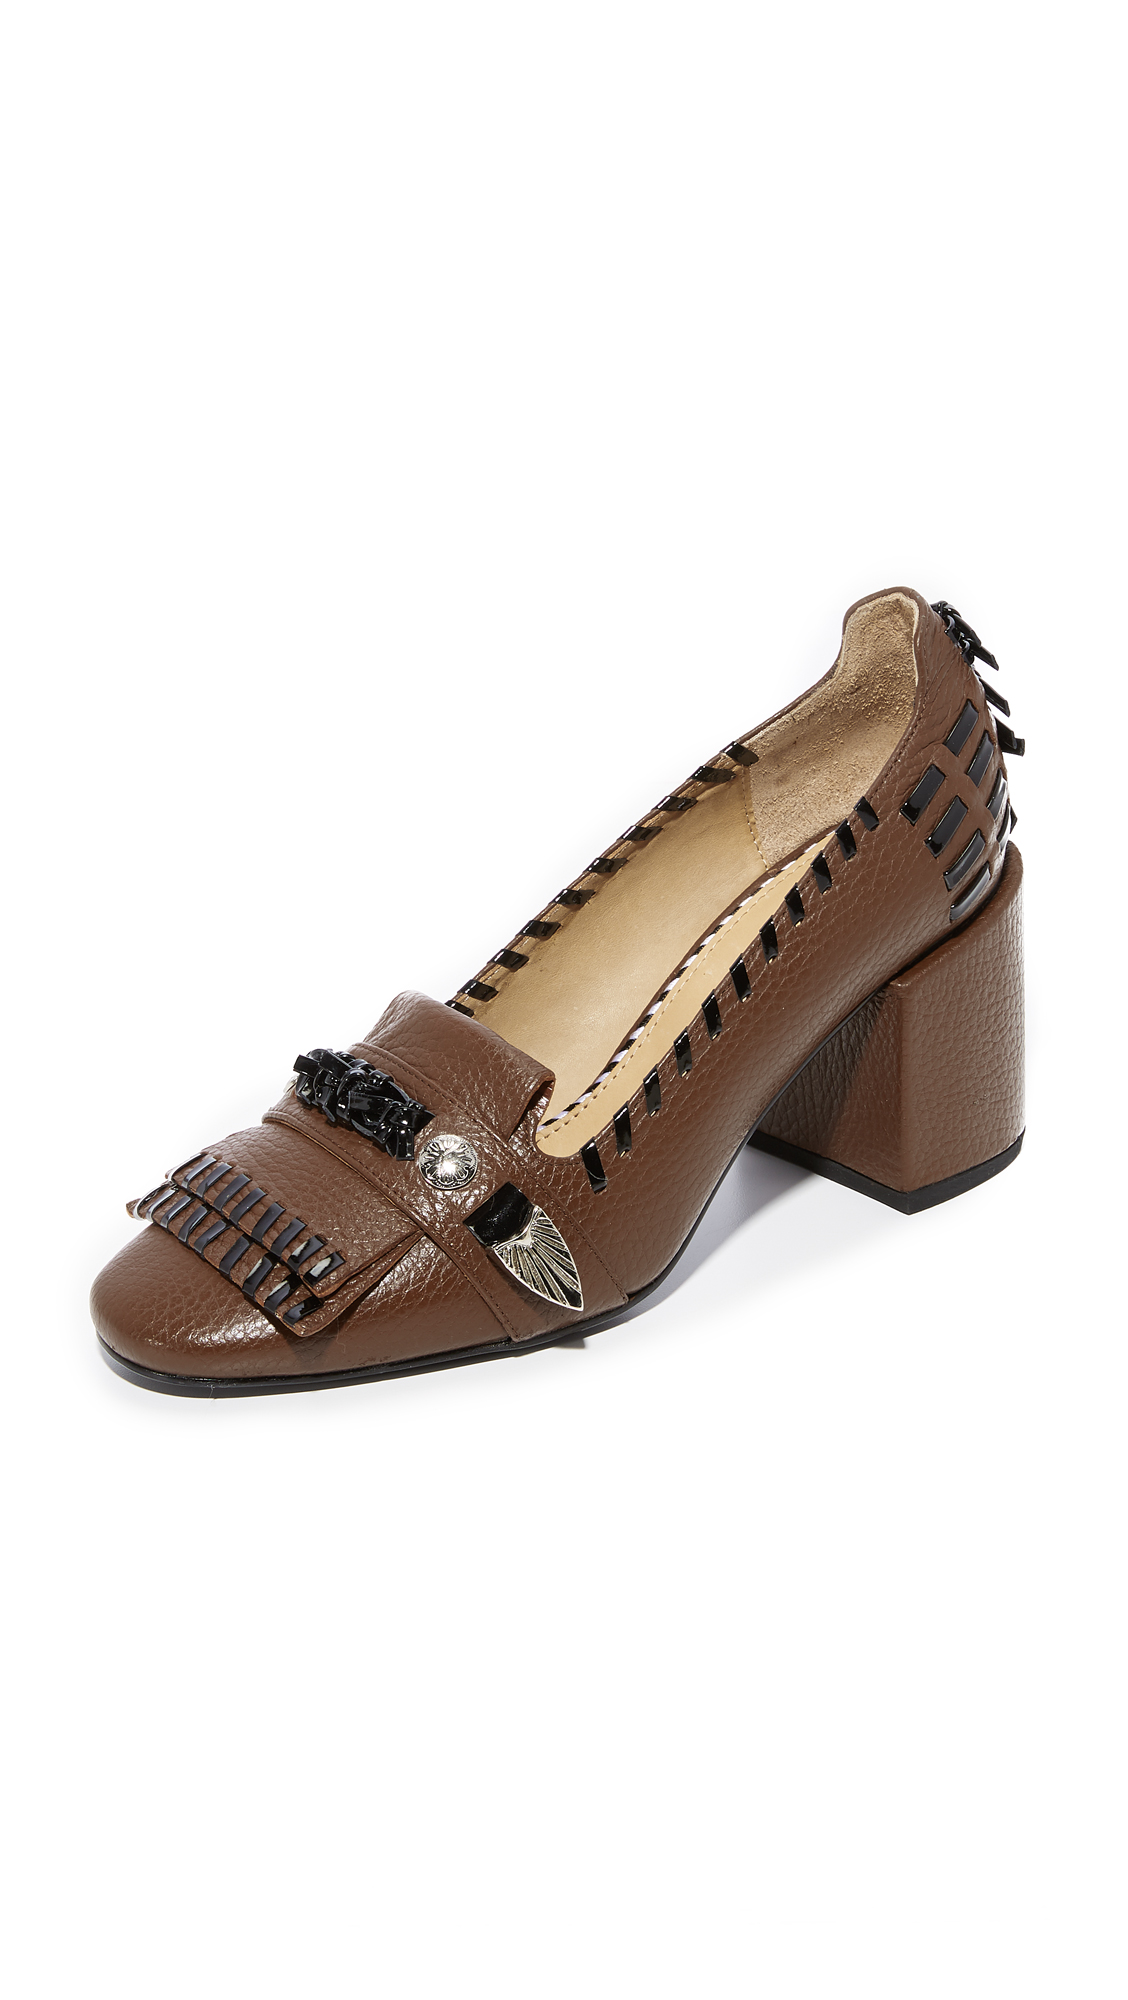 Toga Pulla Kiltie Stitch Pumps - Brown